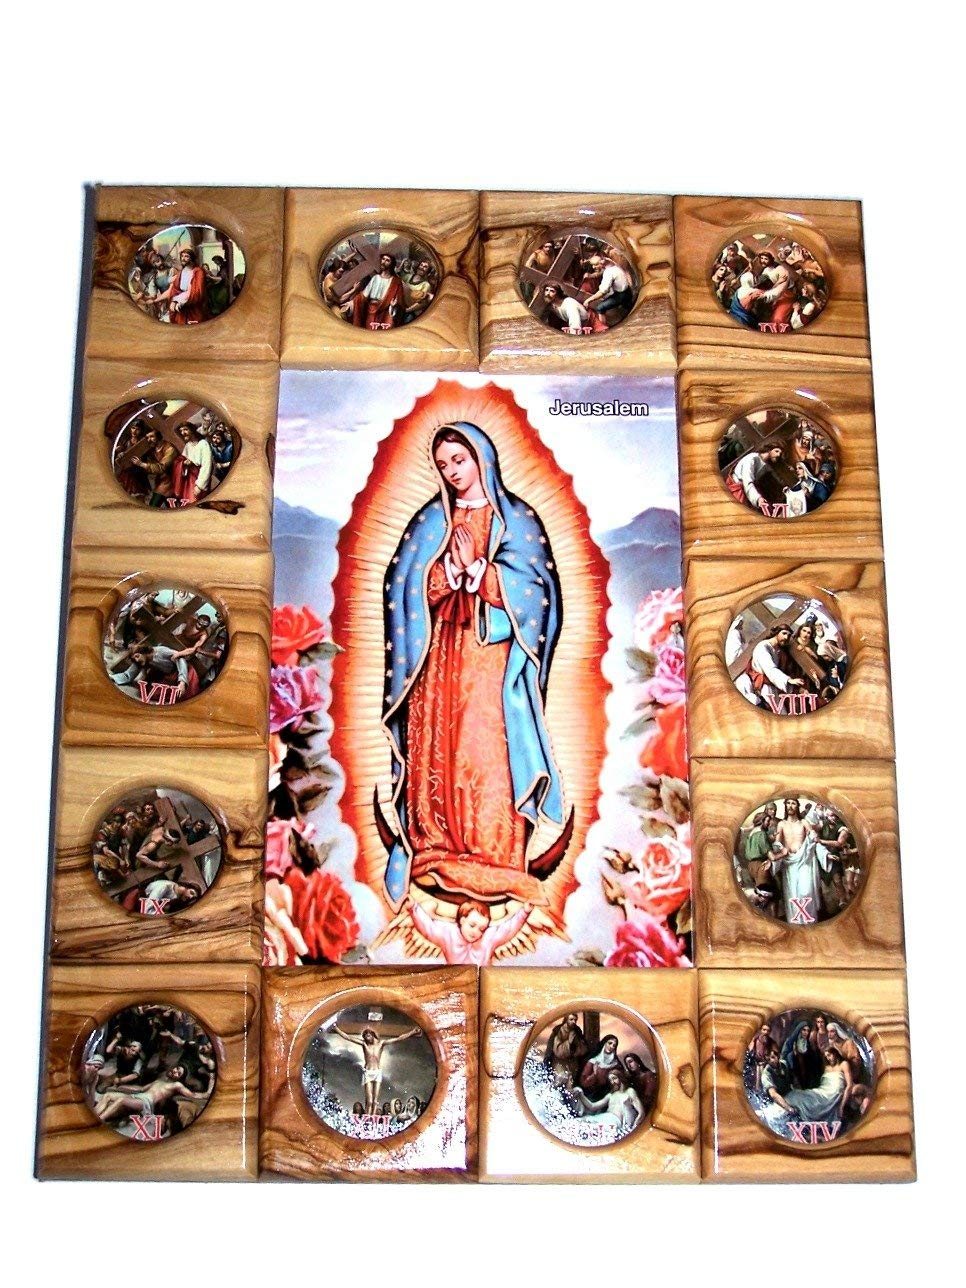 Holy Land Market Our Lady of Guadalupe with Stations of The Cross Icon Plaque All in Olive Wood from Bethlehem 29 x 24 cm or 11.5 x 9.5 inches